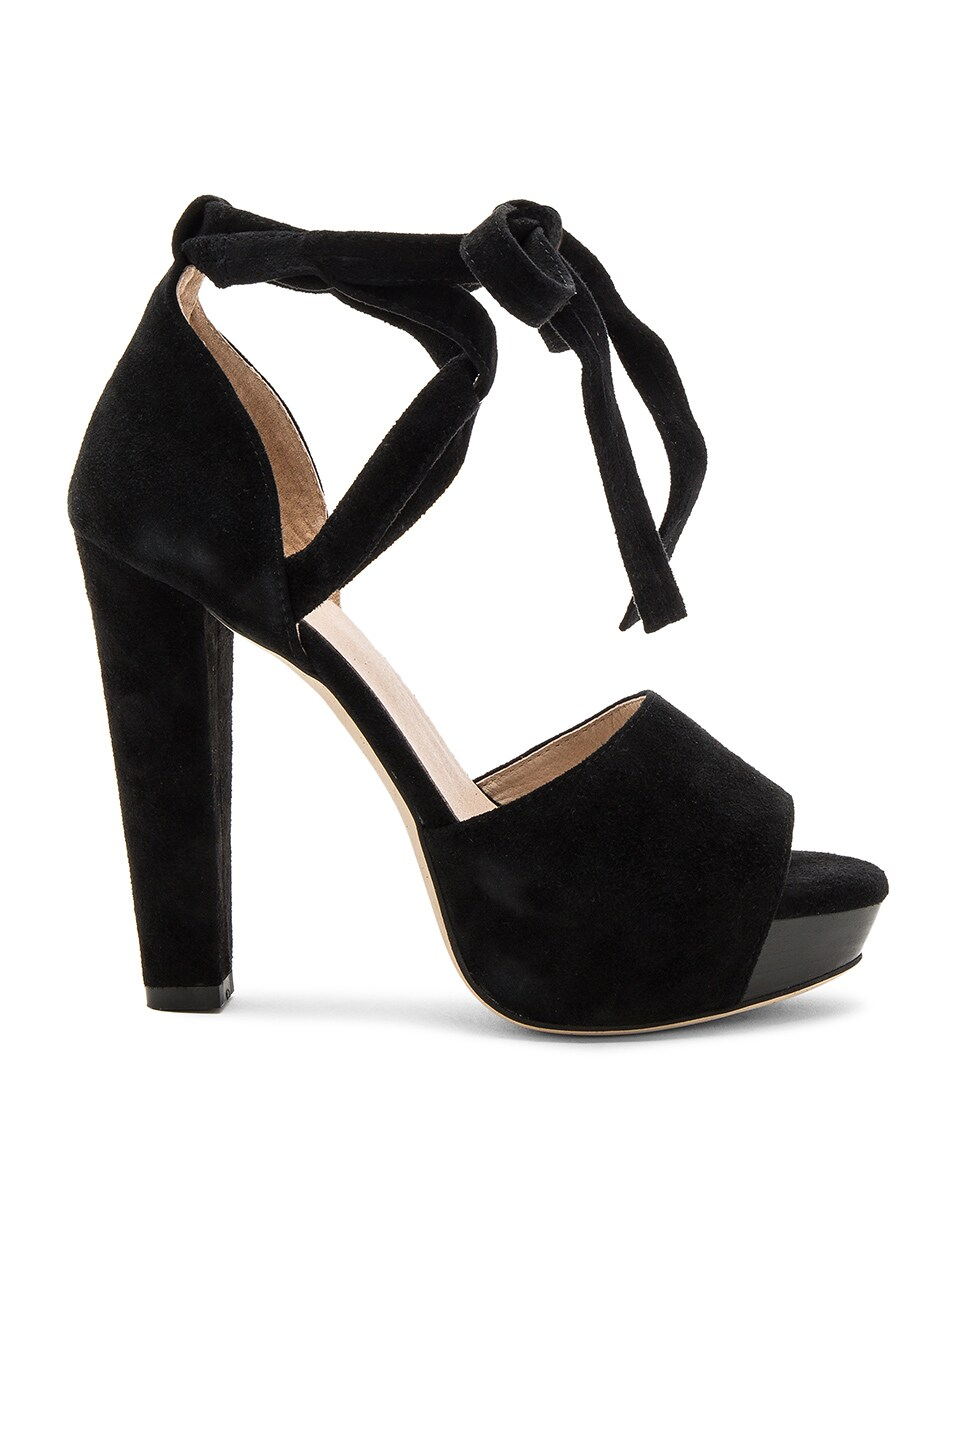 RAYE Hadley Pump in Black